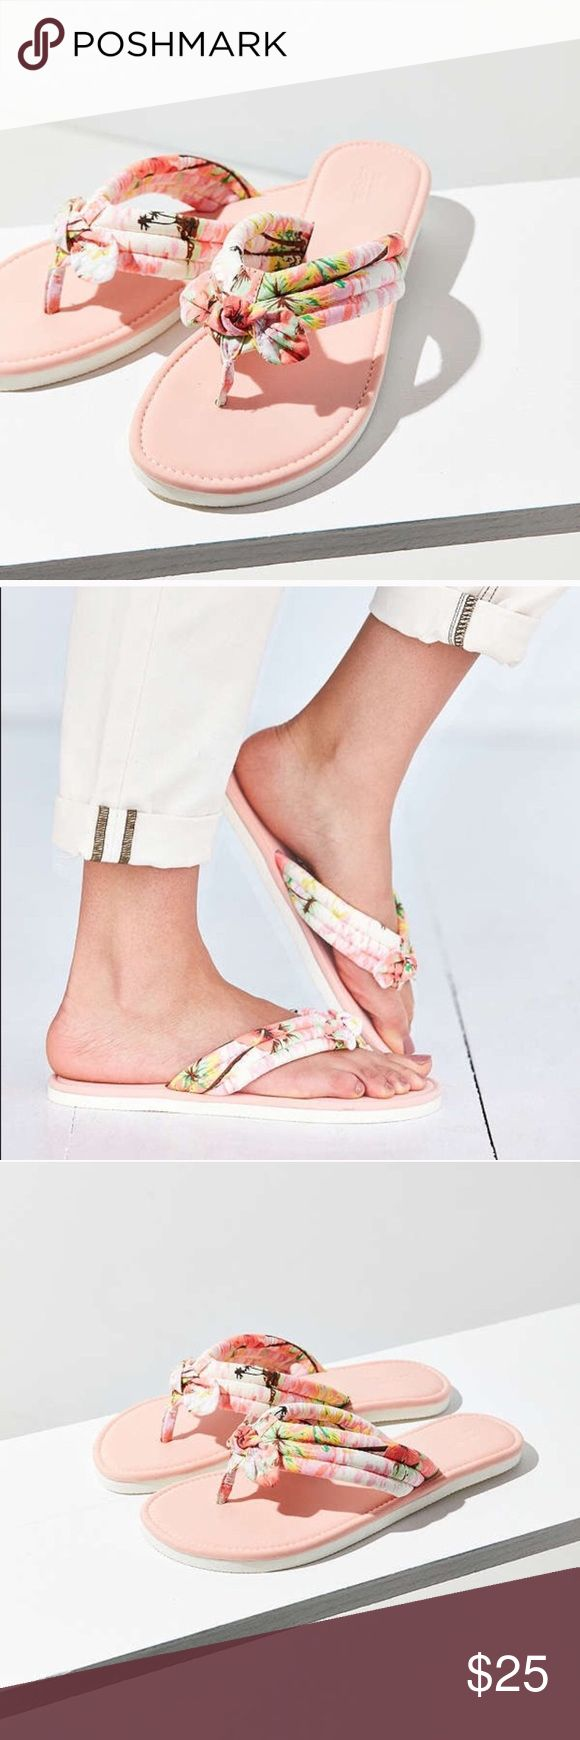 Tropical print thong Give your look a touch of paradise with this printed thong sandal, UO. Tropical printed sandal with thick seamed straps accented with a bow at toes. Laid on a flat, cushy EVA sole.  Content + Care - Cotton, polyester, EVA - Wipe clean Urban Outfitters Shoes Sandals